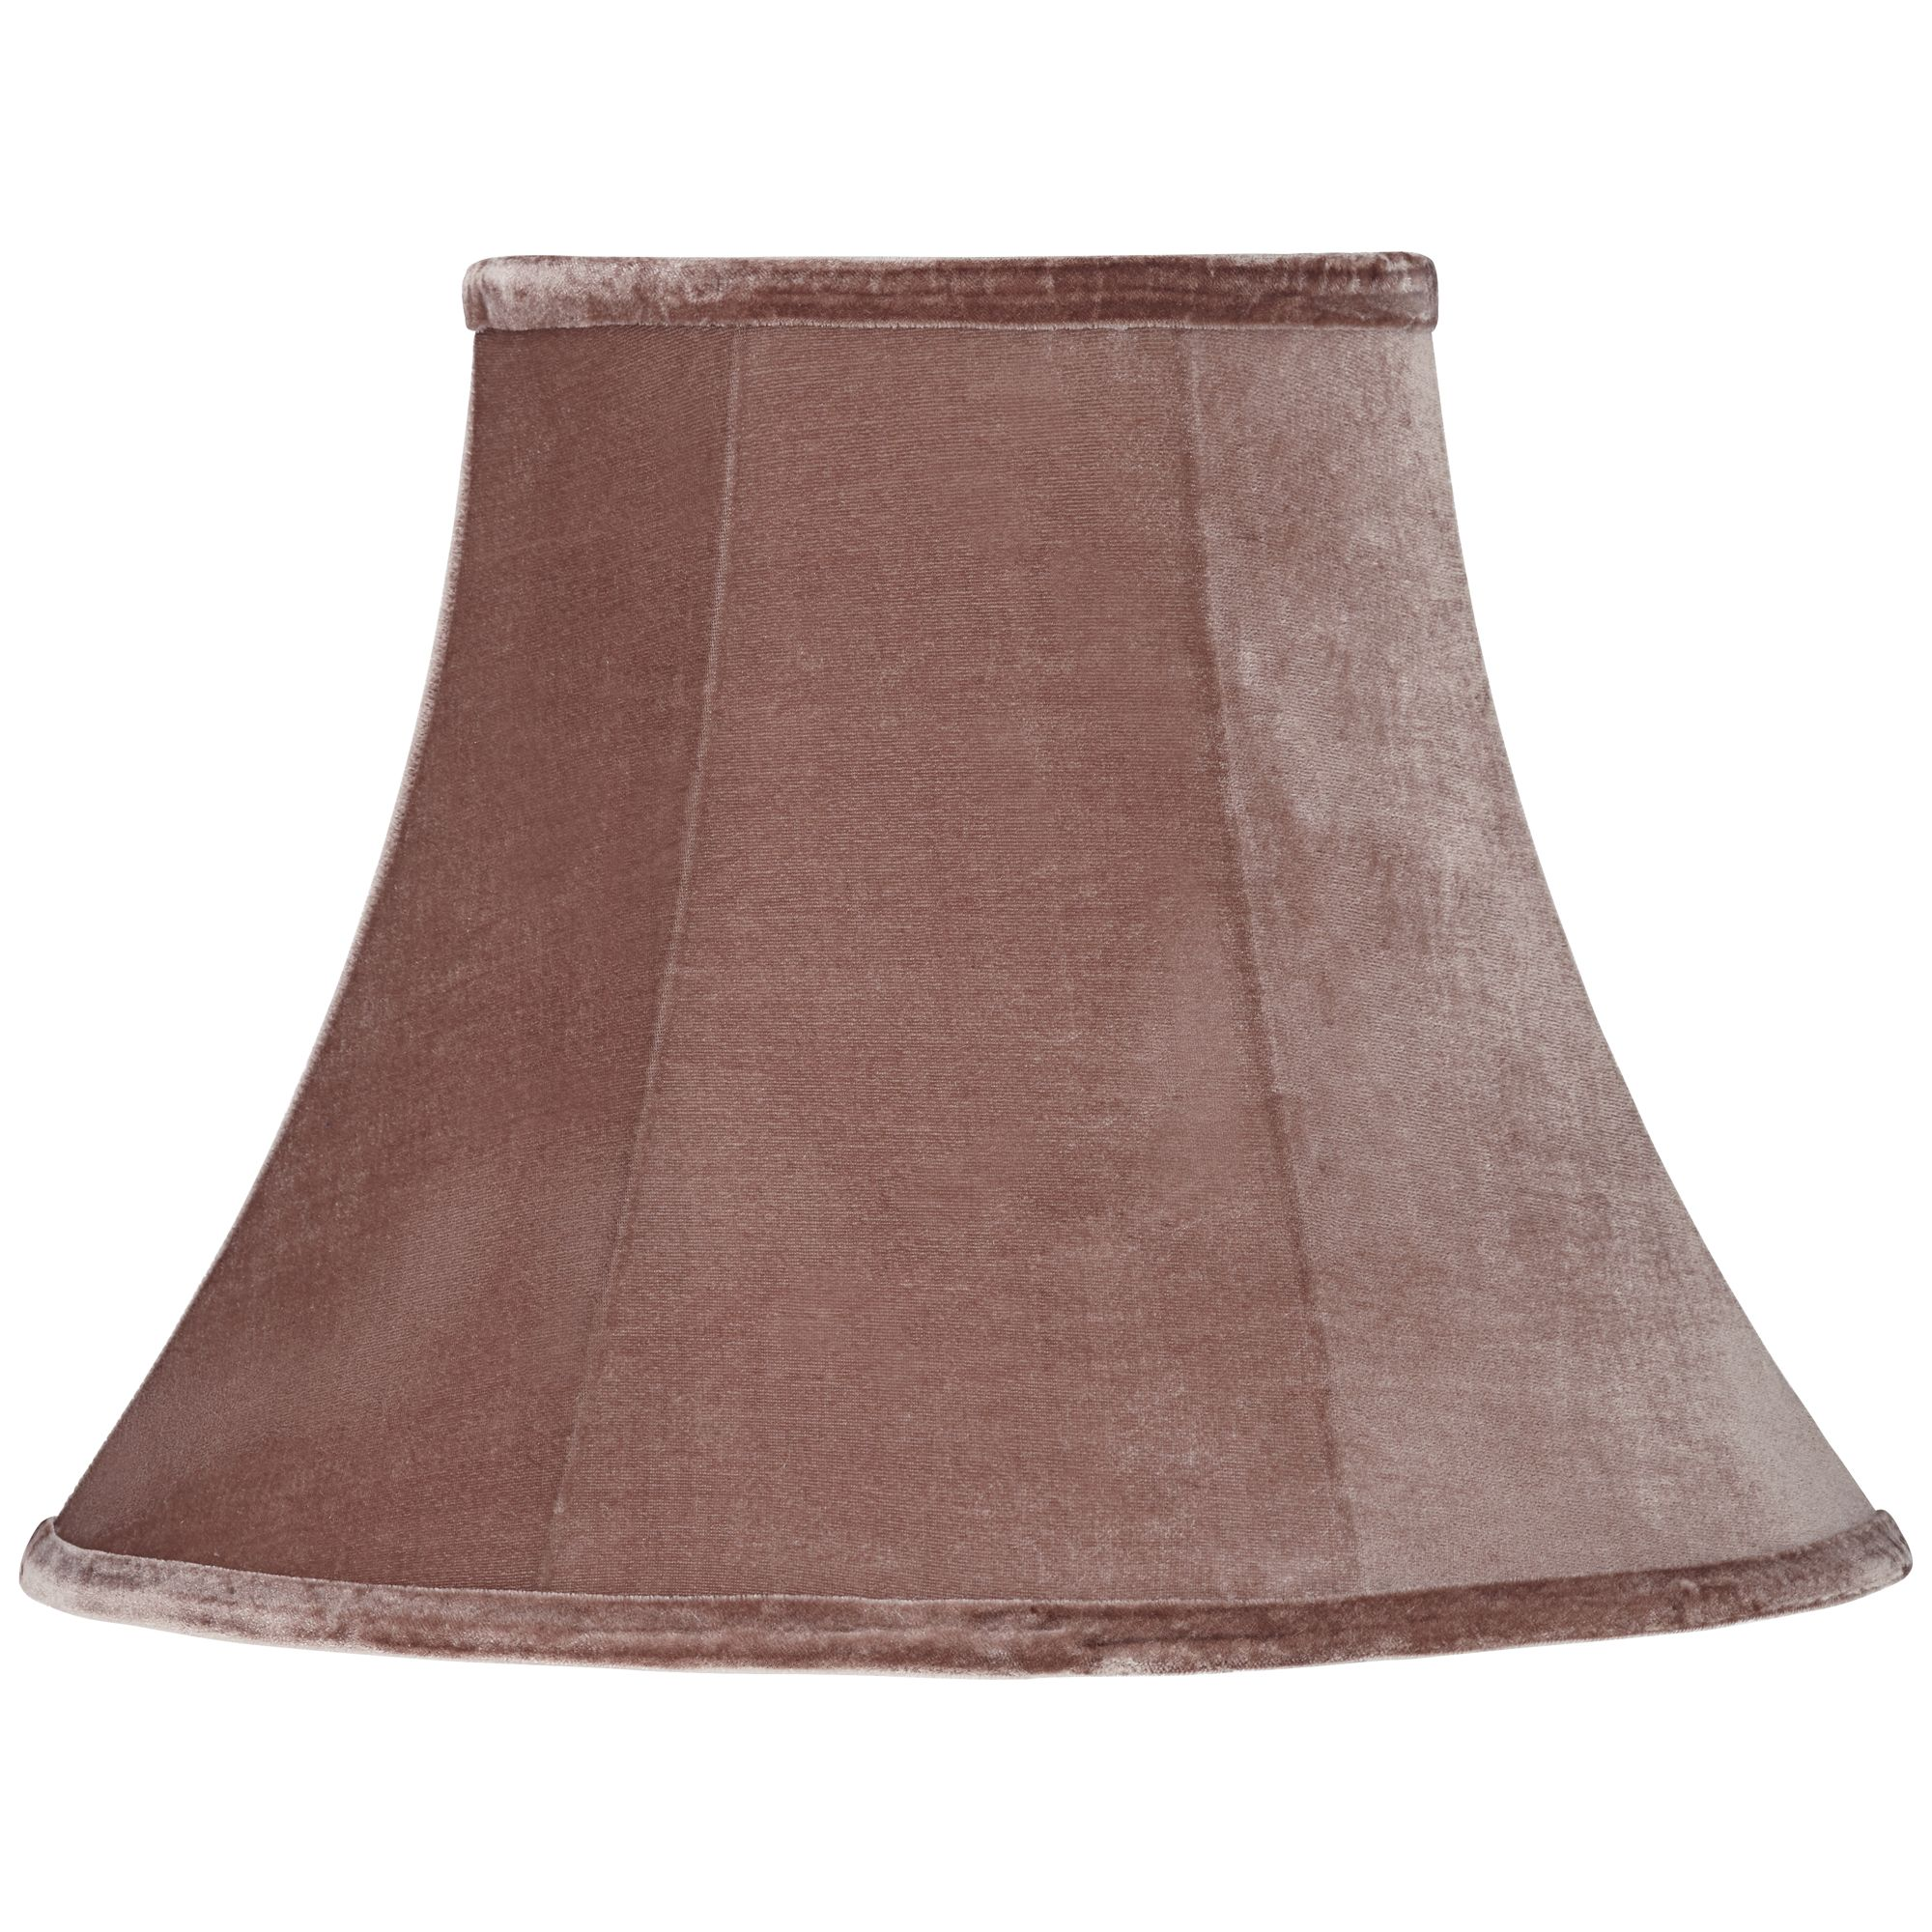 Springcrest Rodger Autumn Rose Bell Lamp Shade 6/8X11/16X12 (Spider)